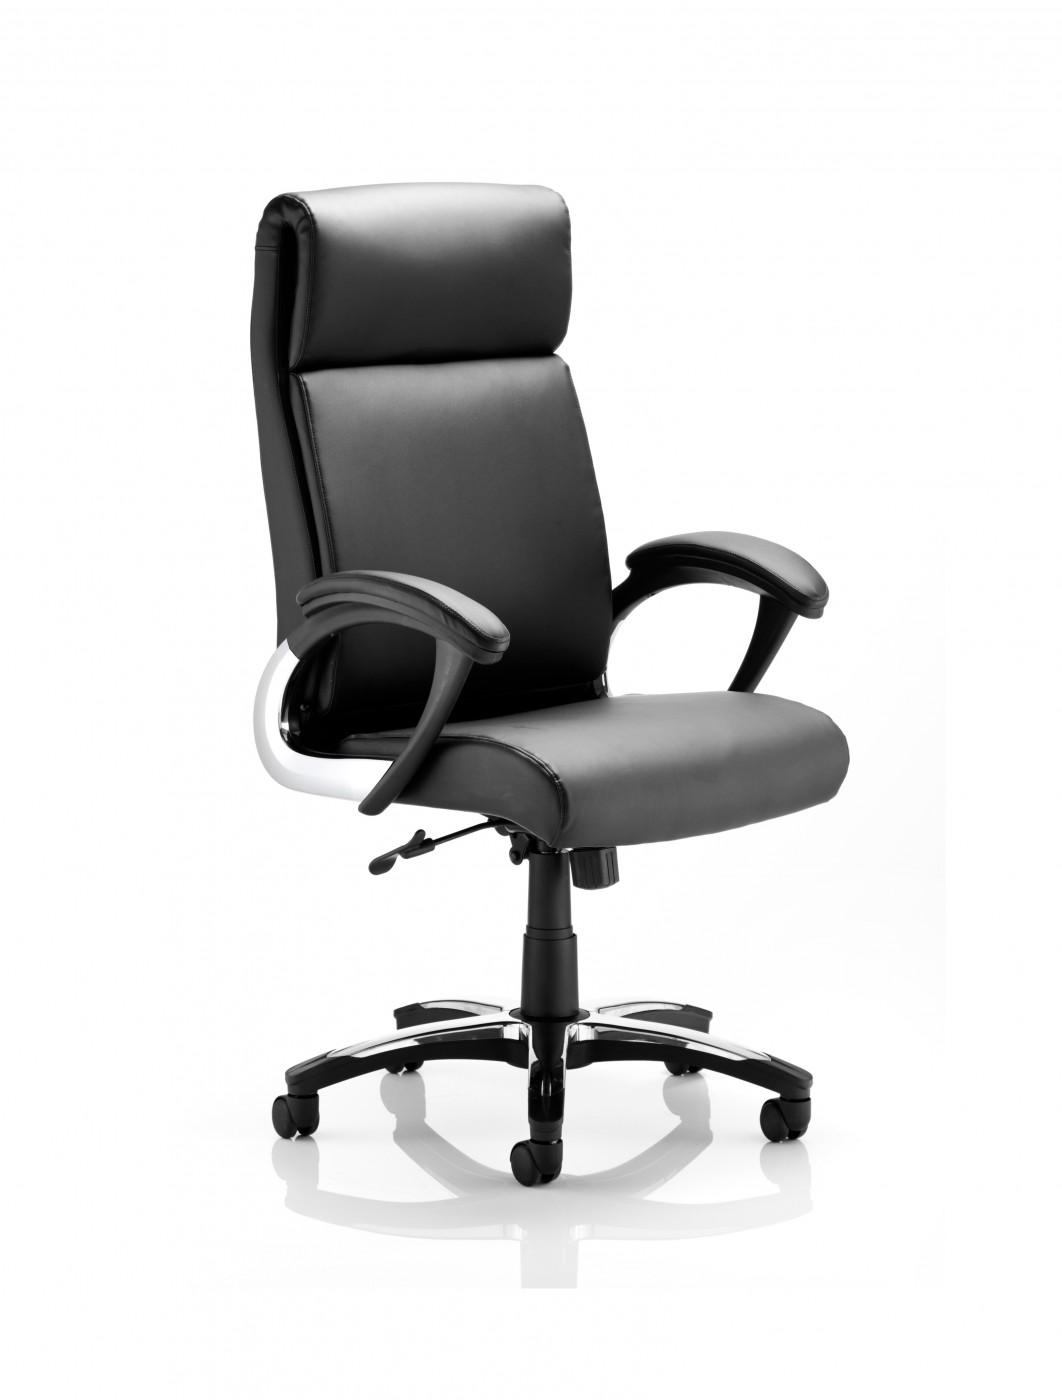 dynamic romeo leather folding executive office chair | 121 office